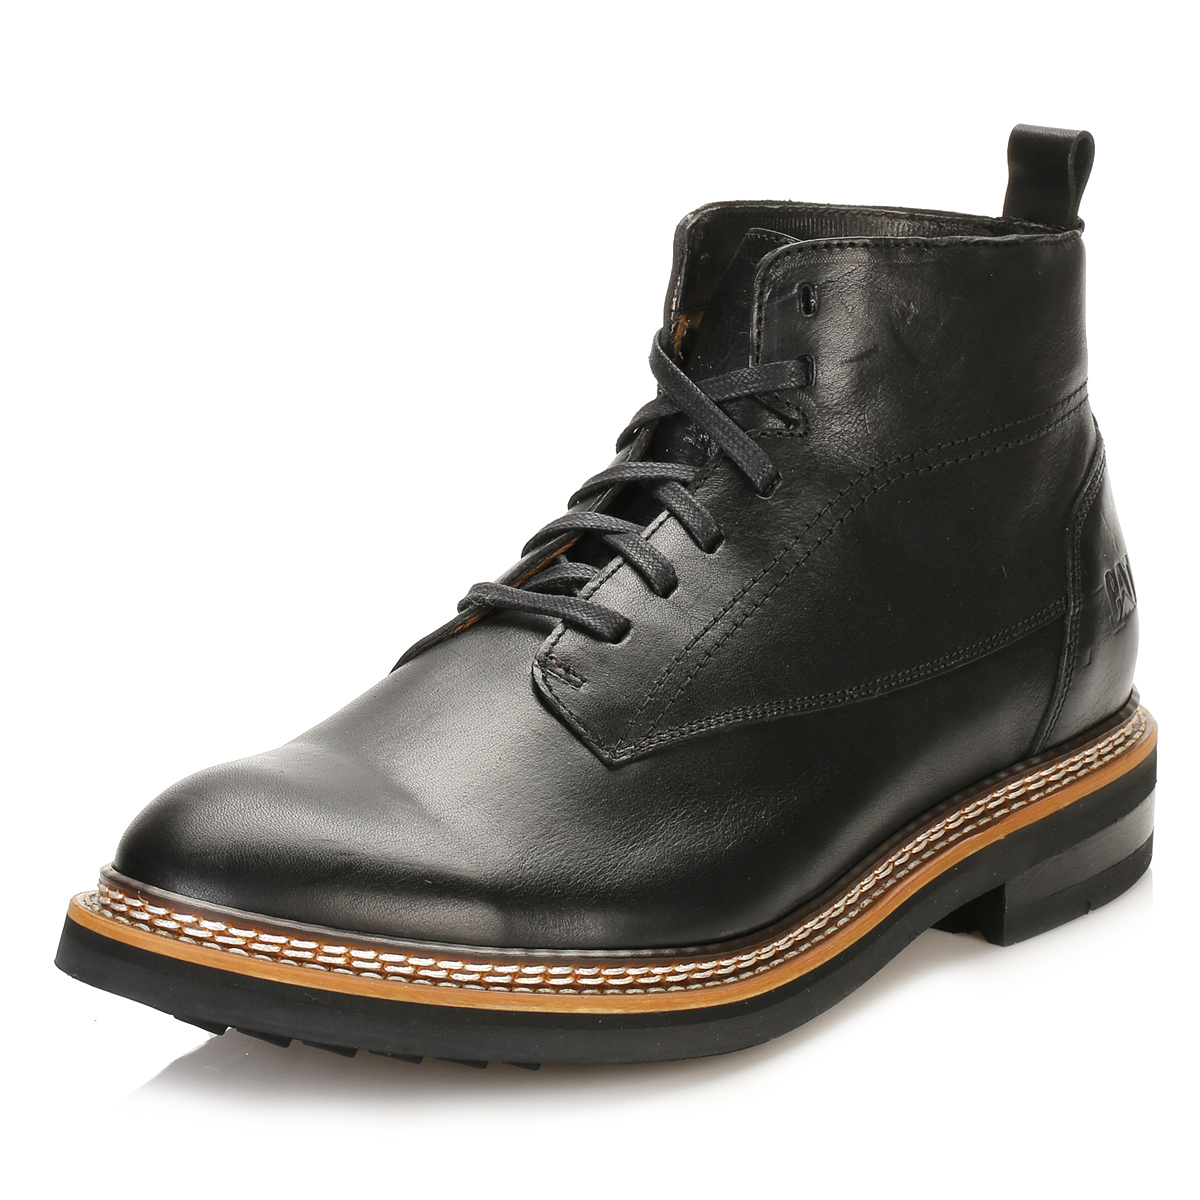 Goodyear Welted Shoes Sale